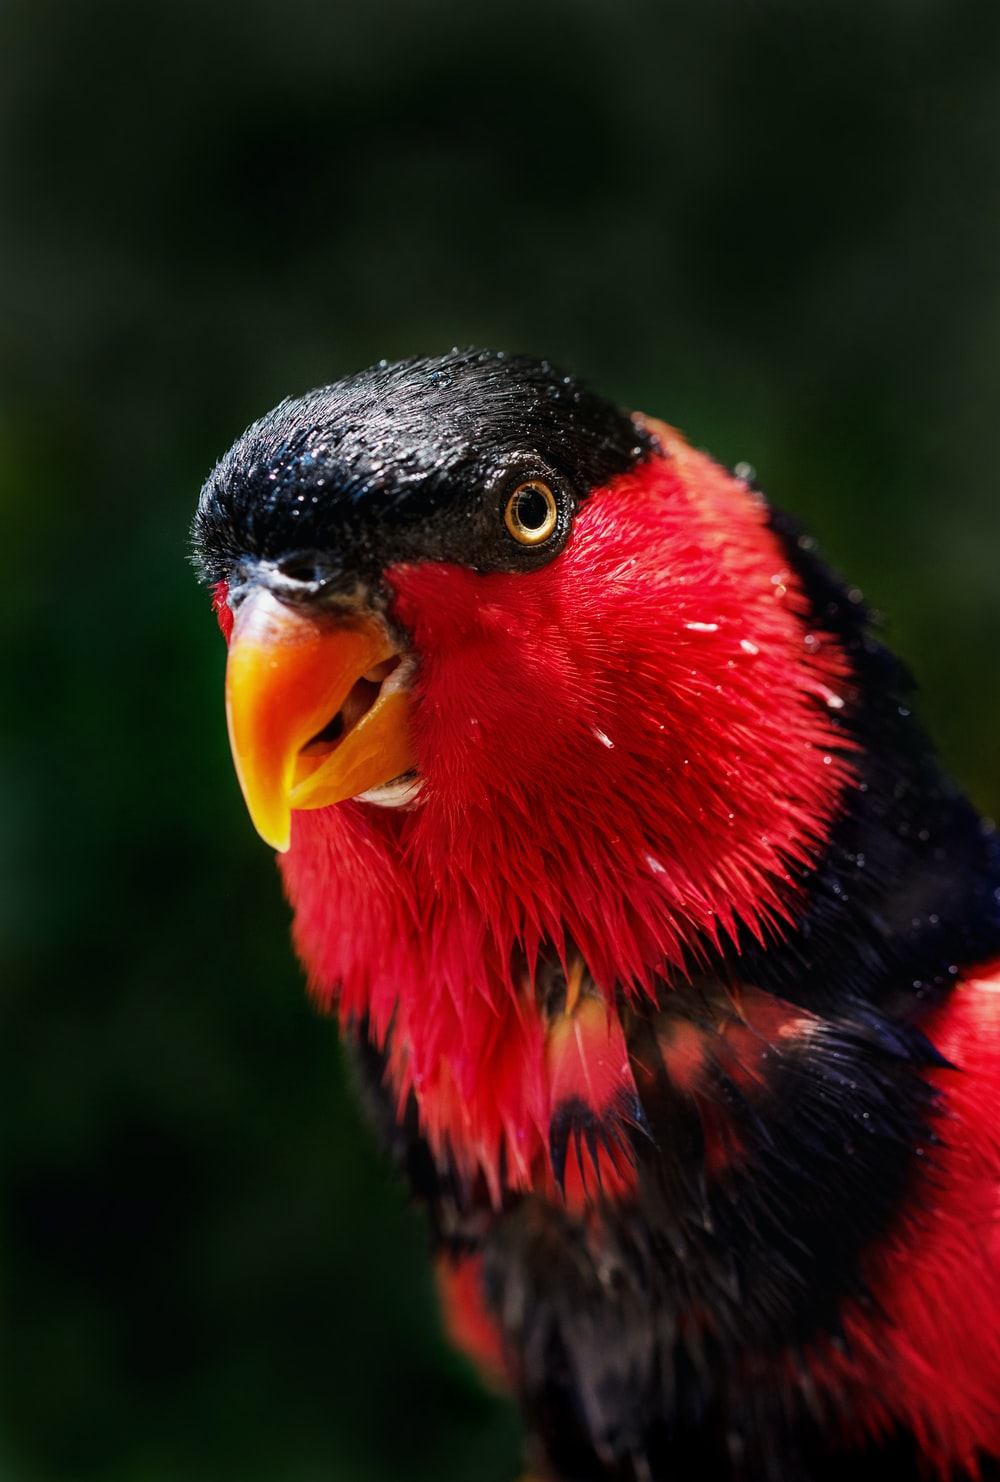 red and black bird